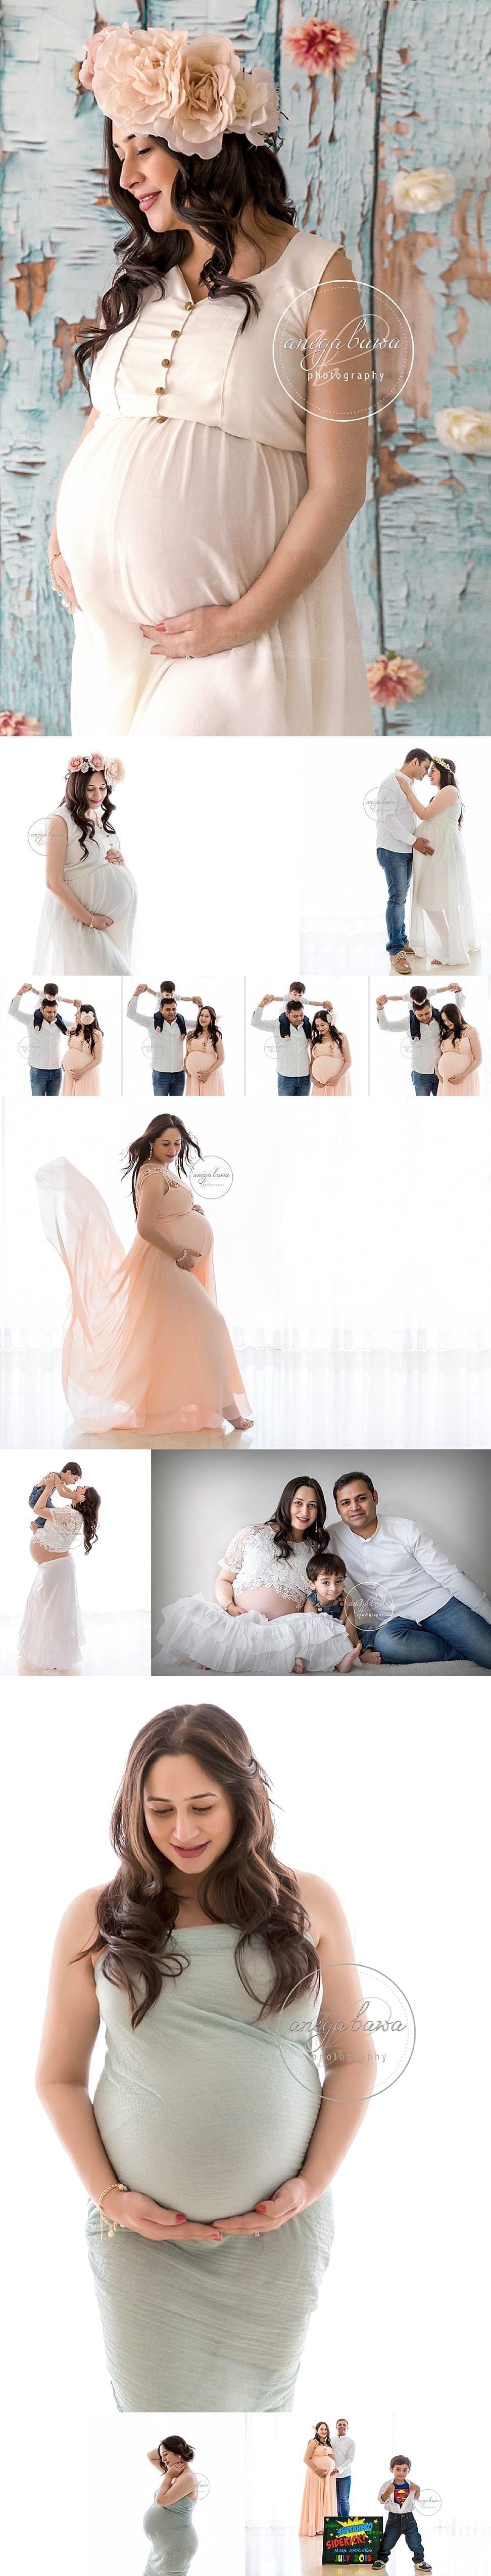 maternity_session_017_with_child_maternity_photographer_in_delhi_pregnancy